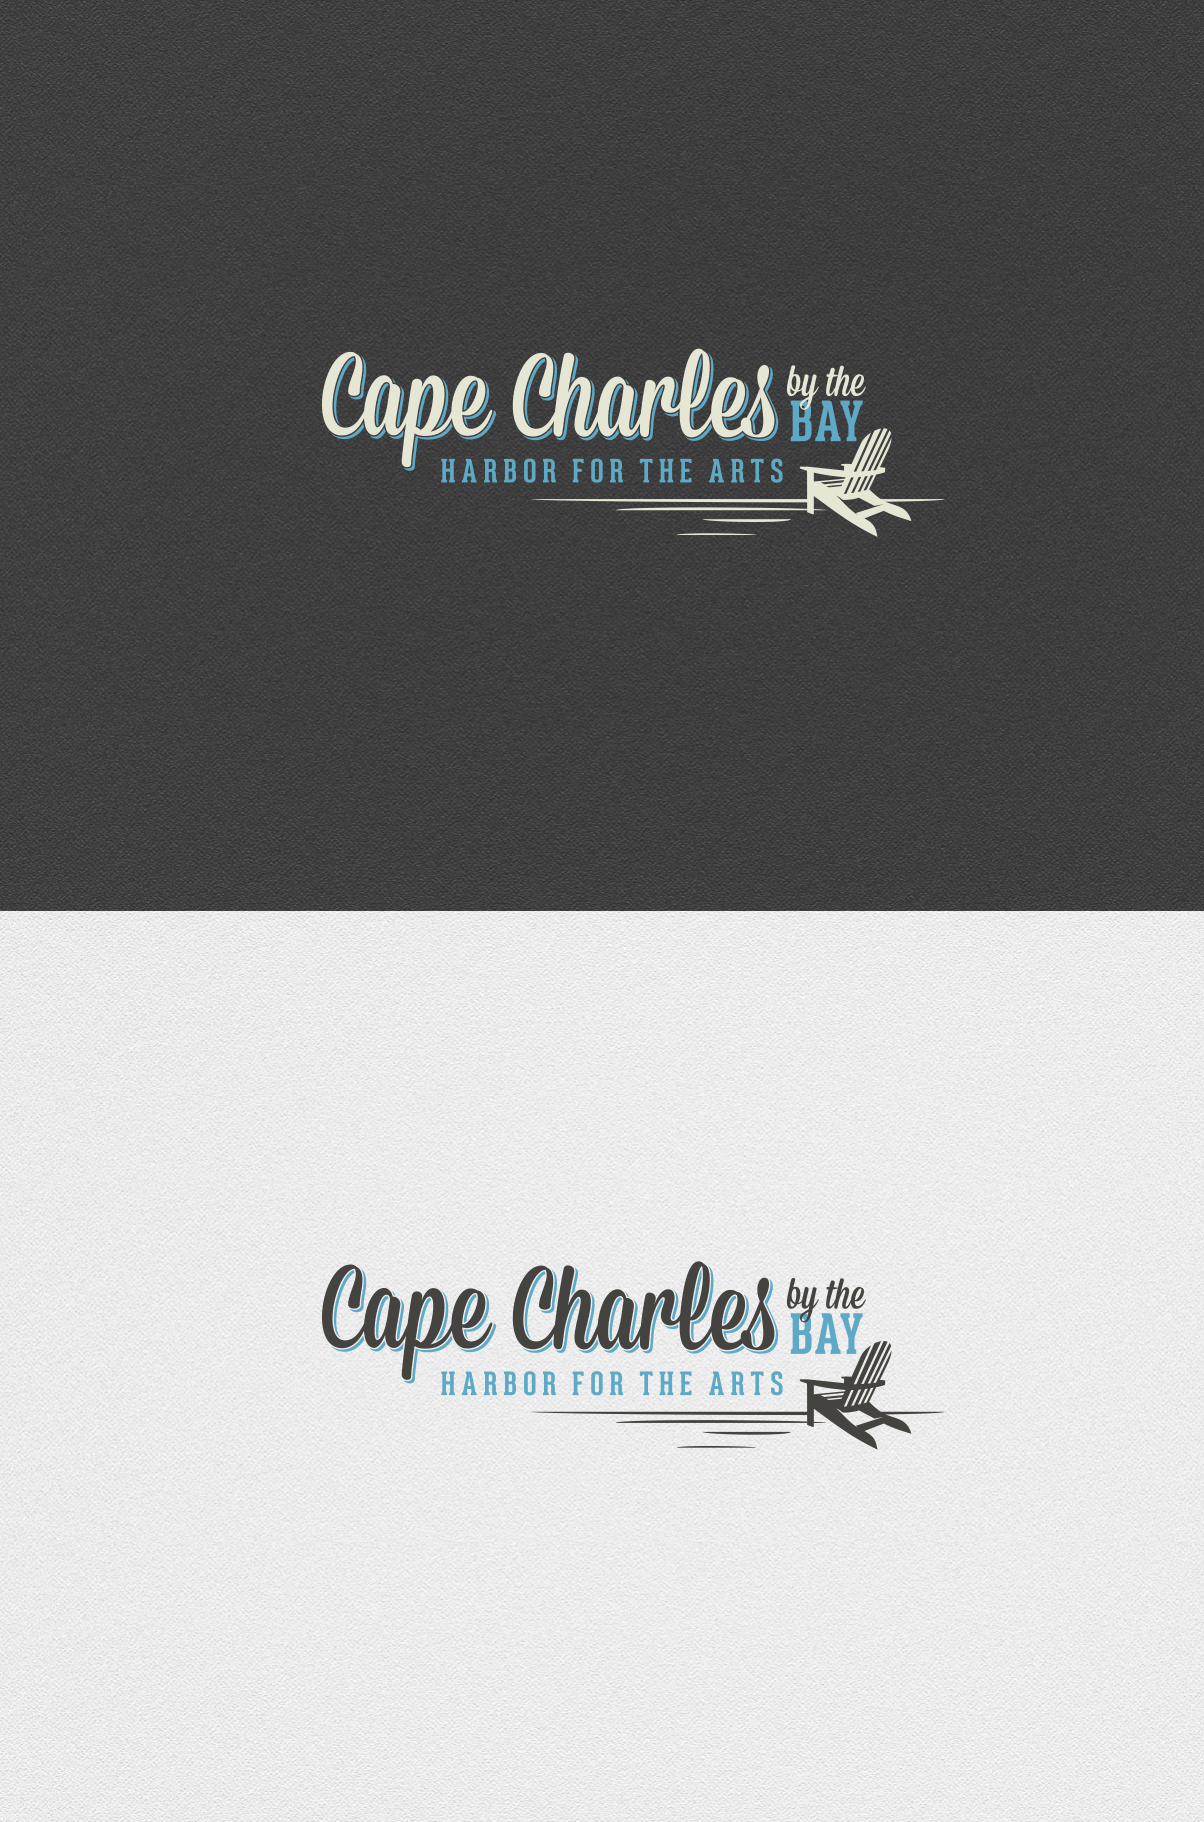 New logo wanted for Cape Charles by the Bay